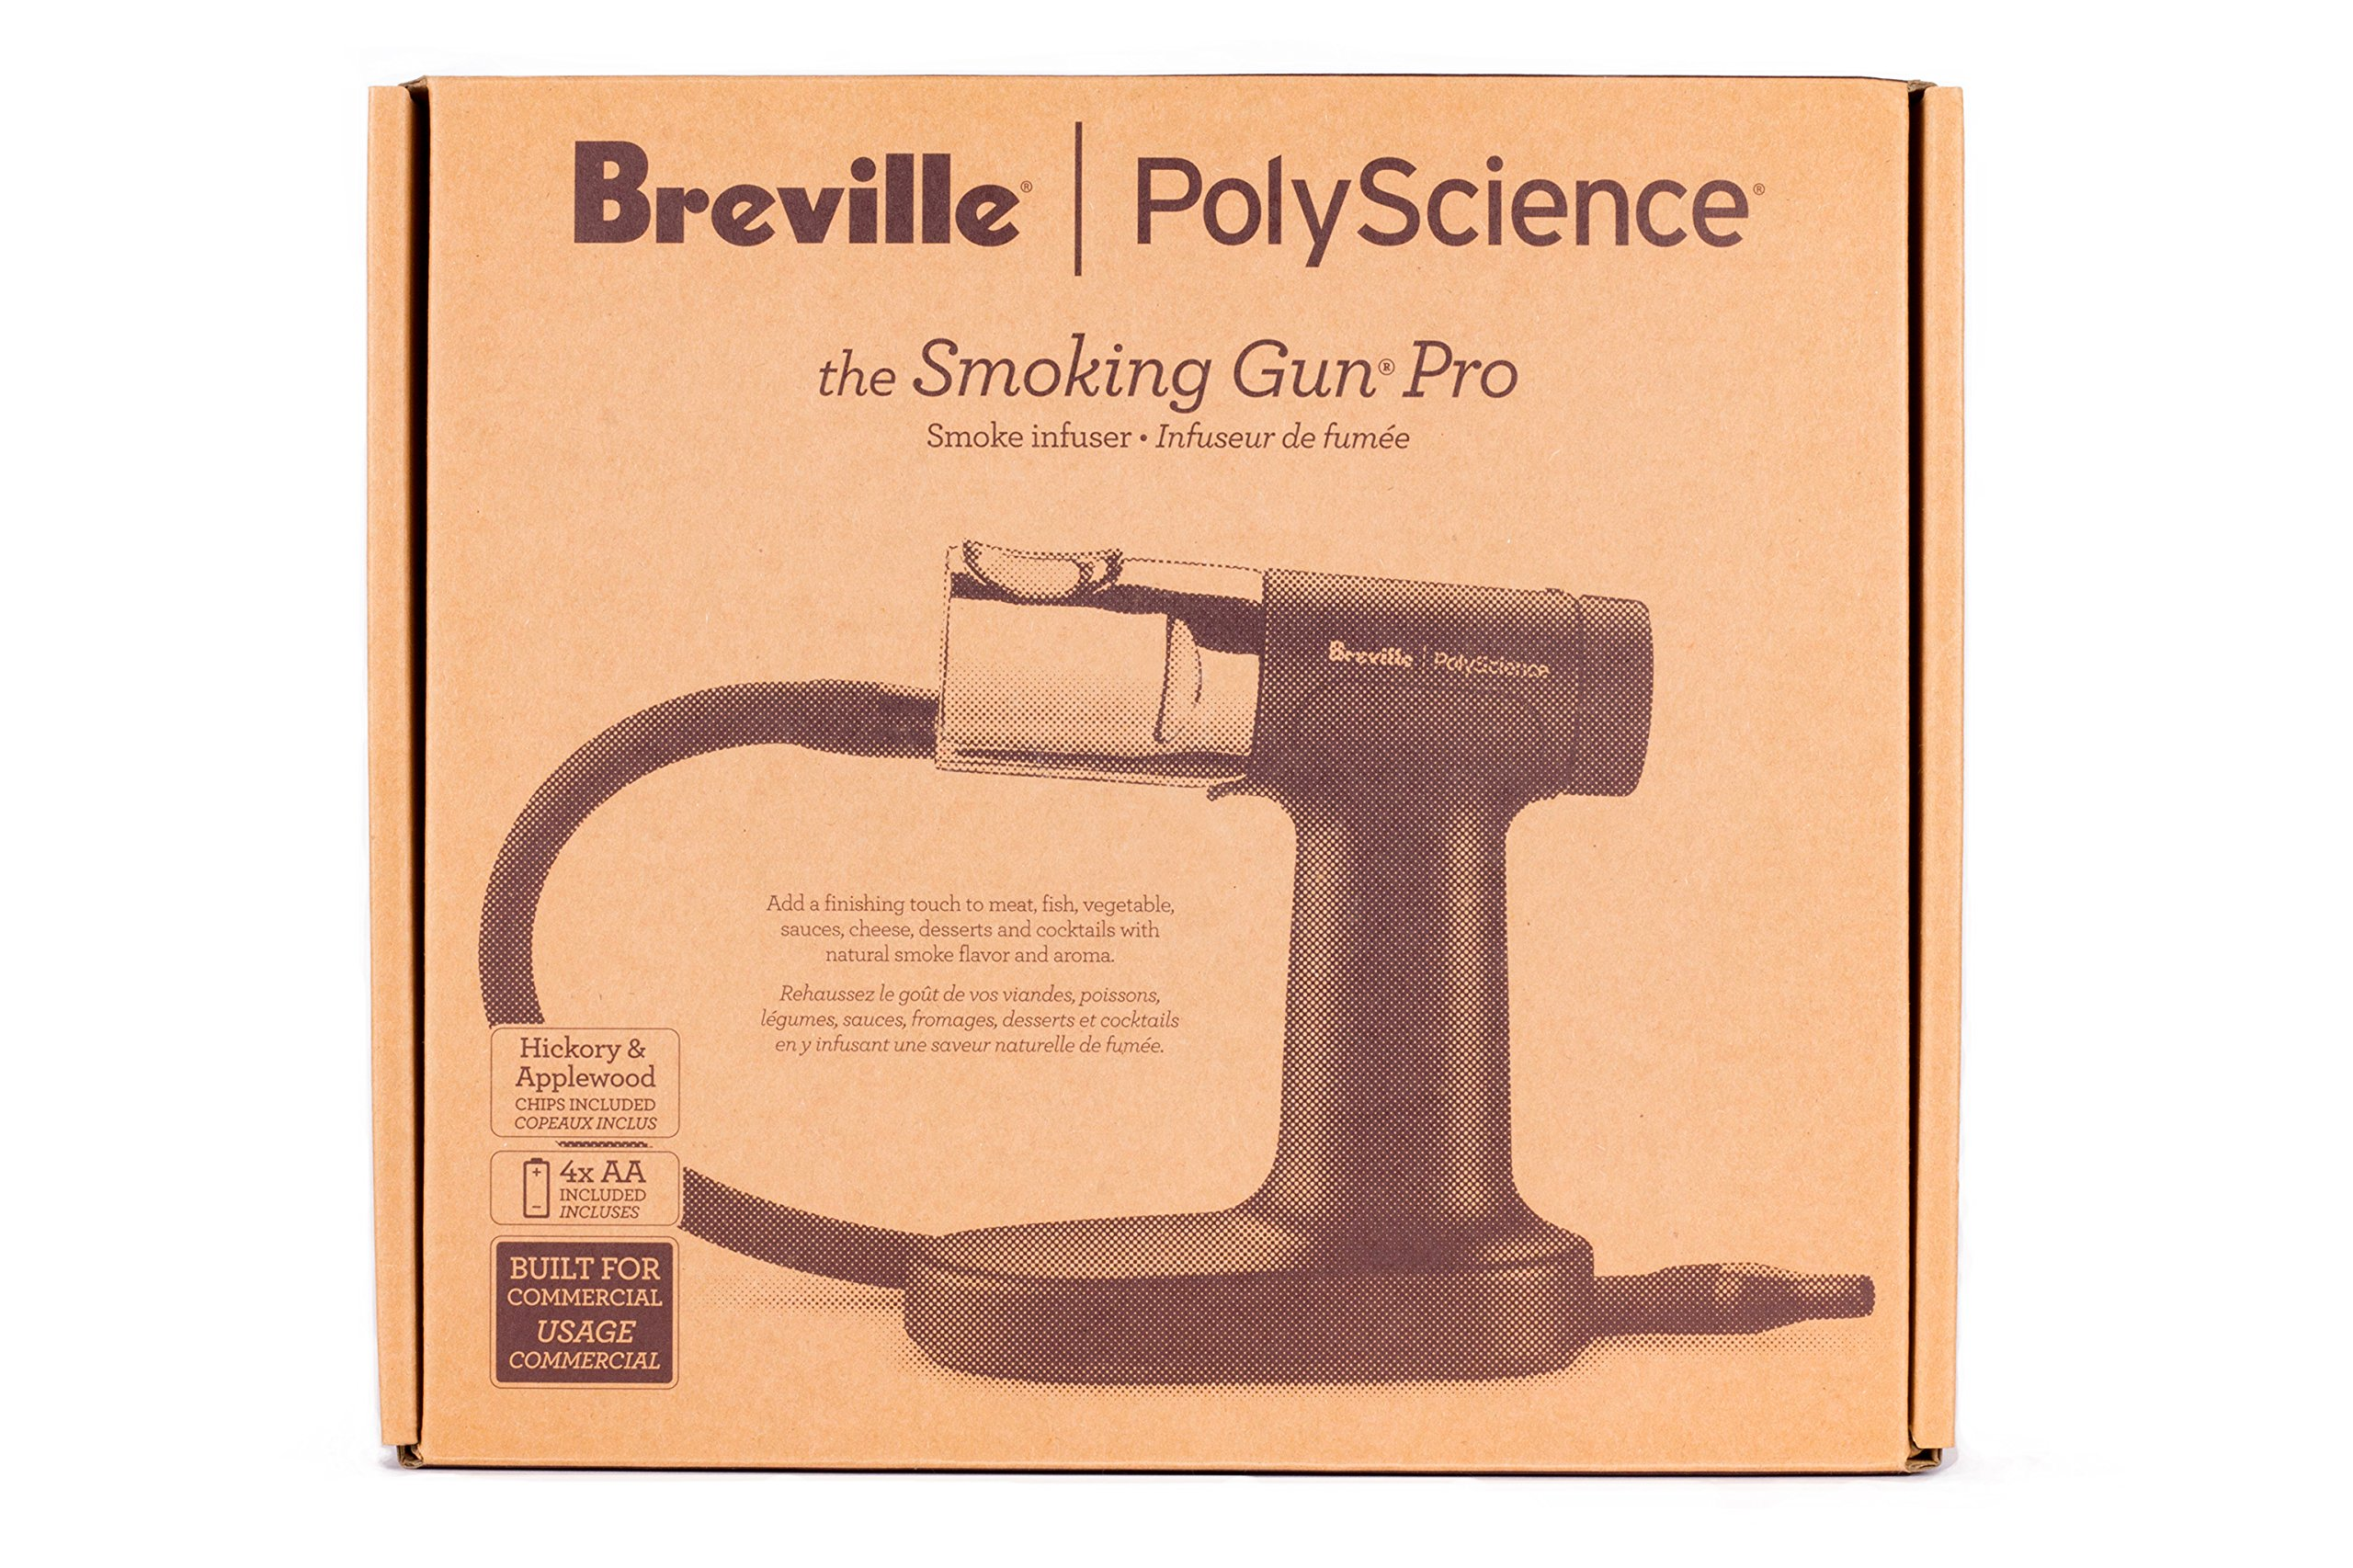 Breville|PolyScience The Smoking Gun Pro Smoke Infuser, Commercial by PolyScience (Image #9)